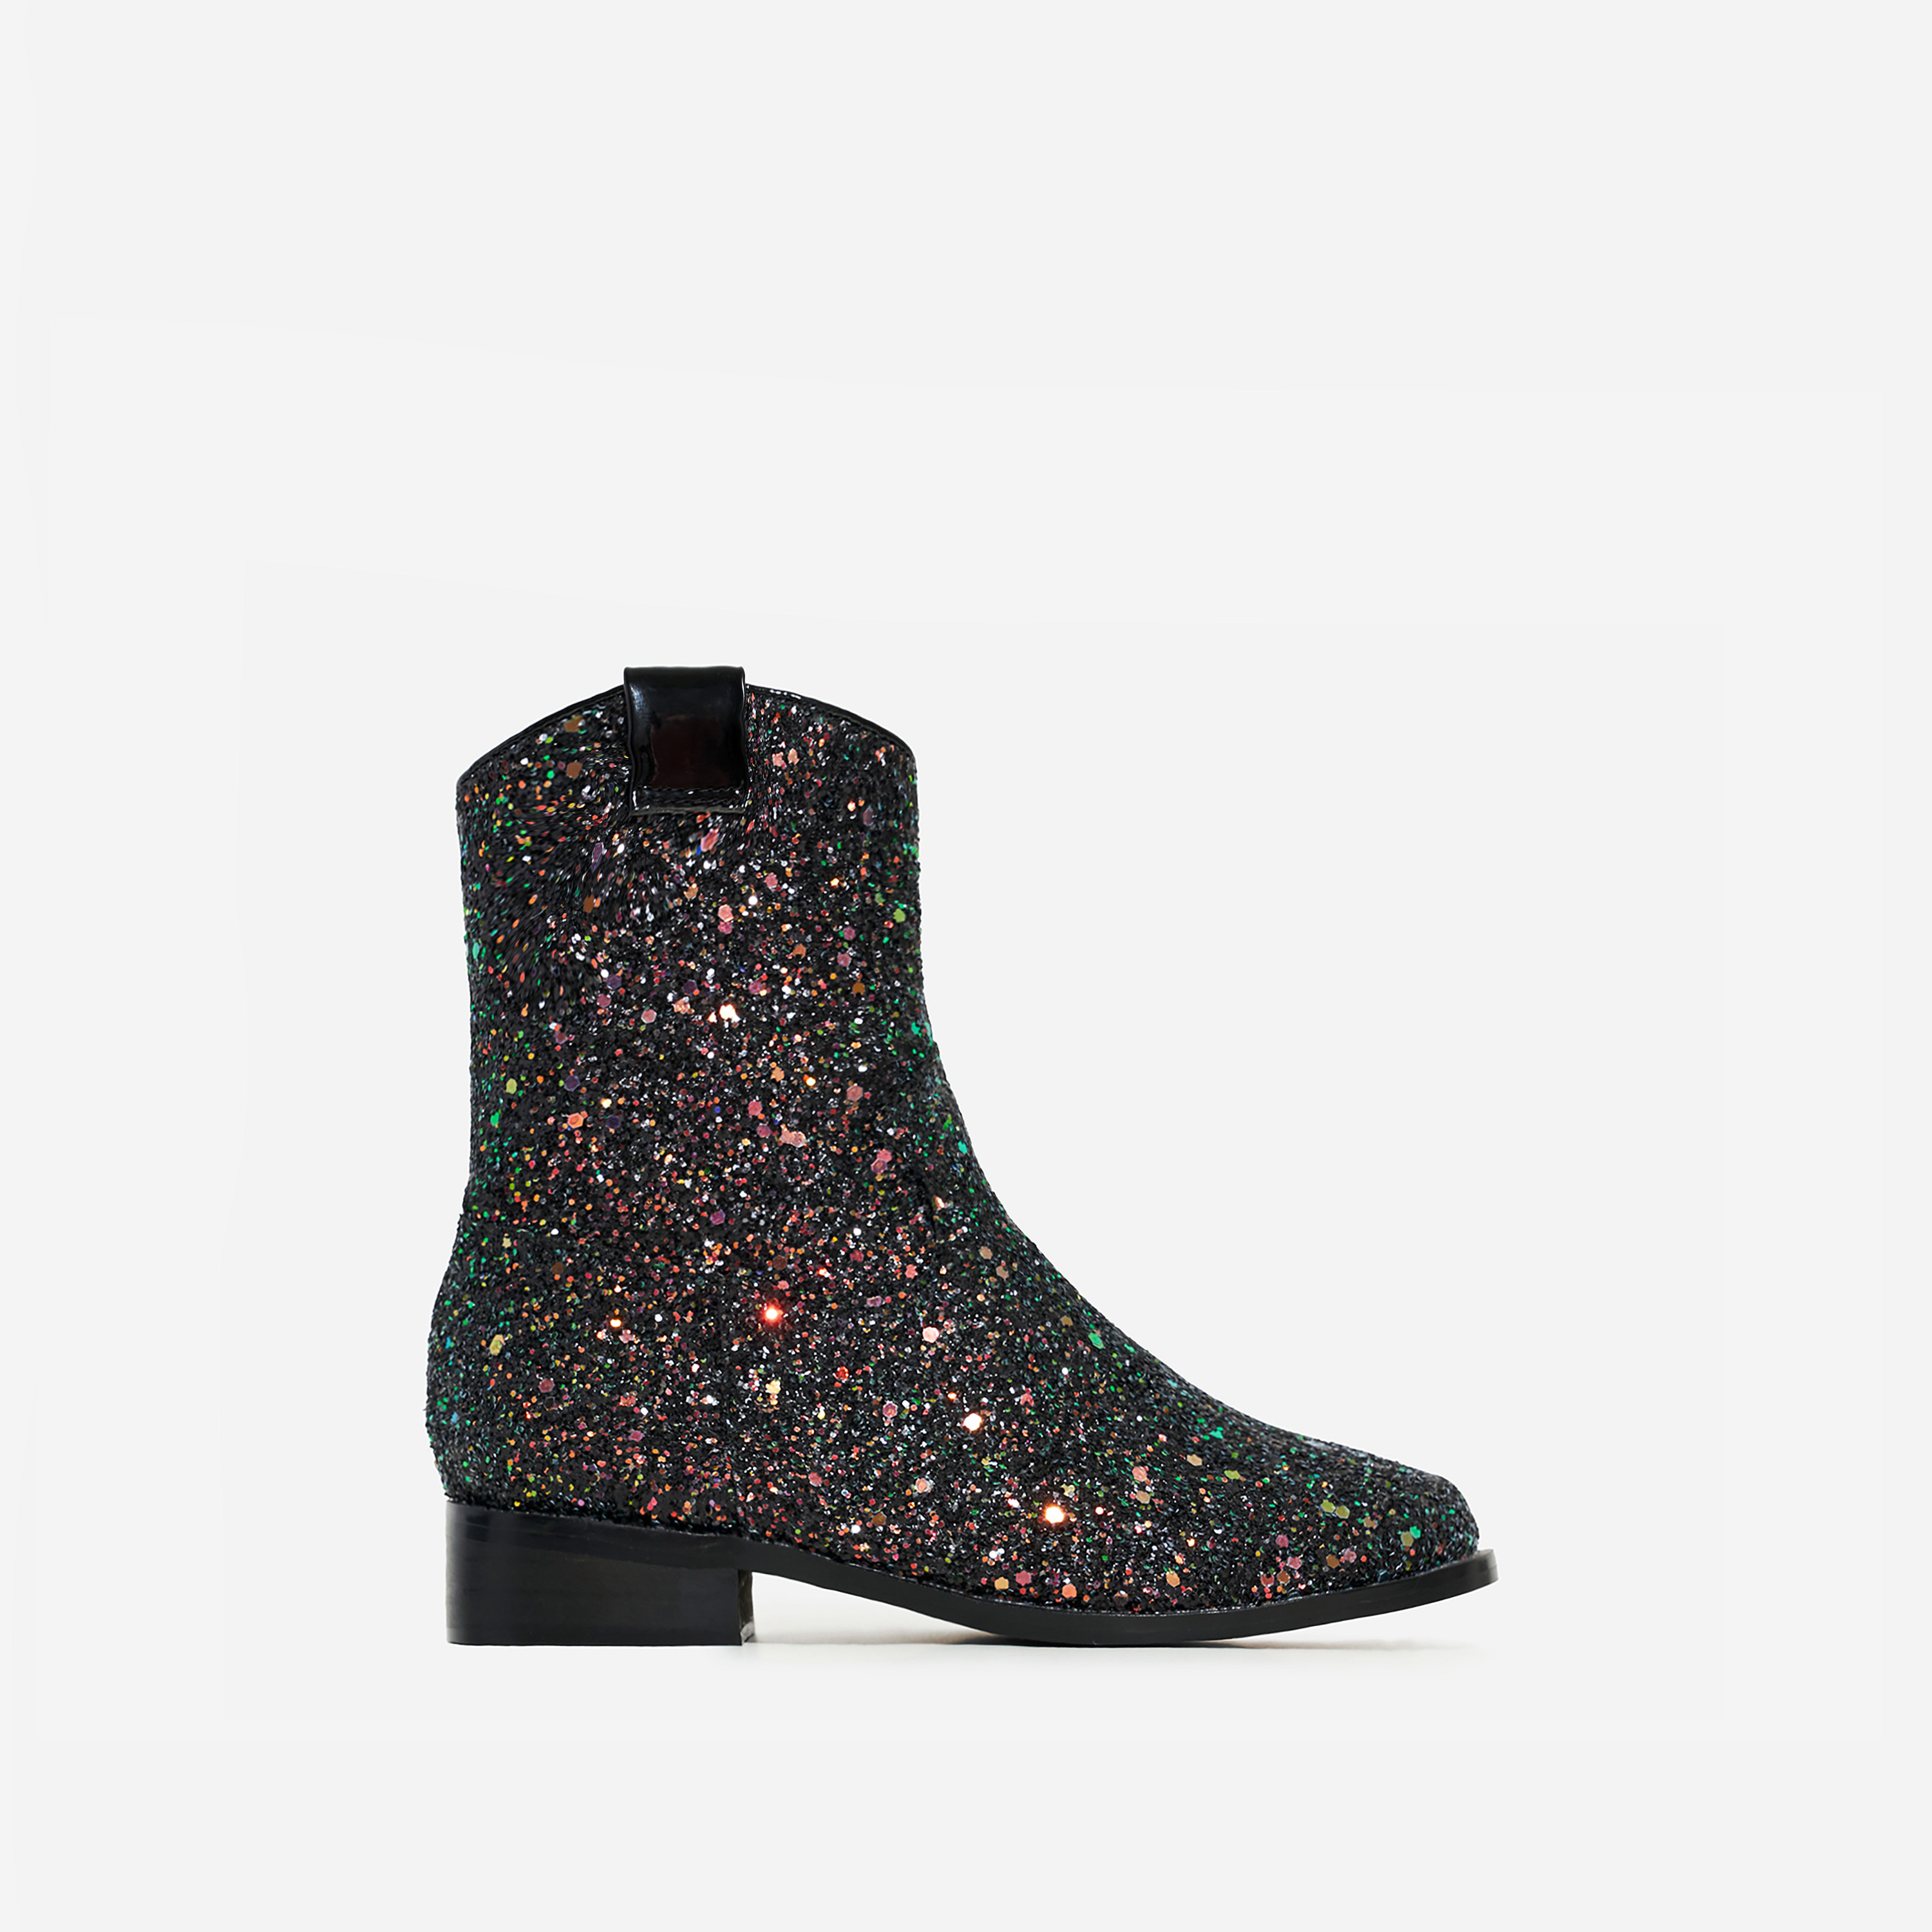 Sparkle Girl's Ankle Western Boot In Black Multi Glitter